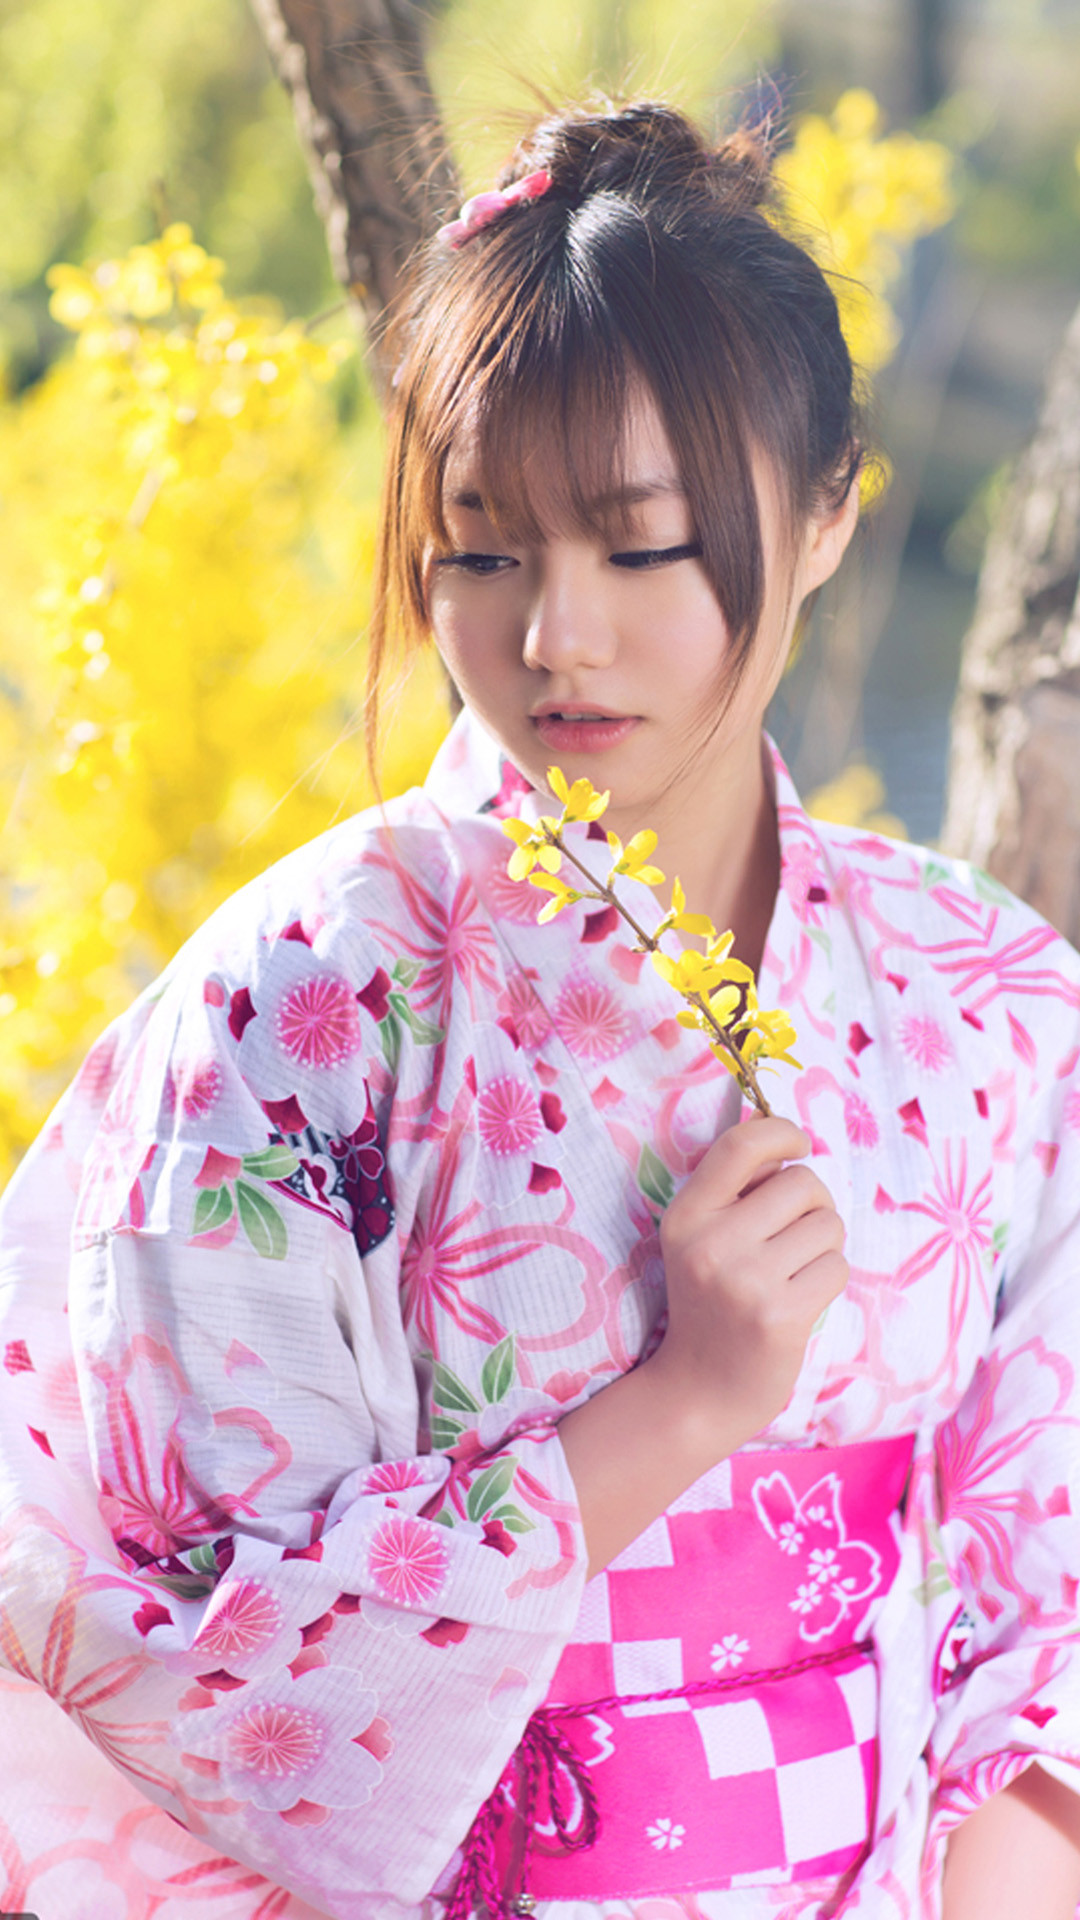 Cute phone wallpapers for girls 53 images - Japanese wallpaper phone ...